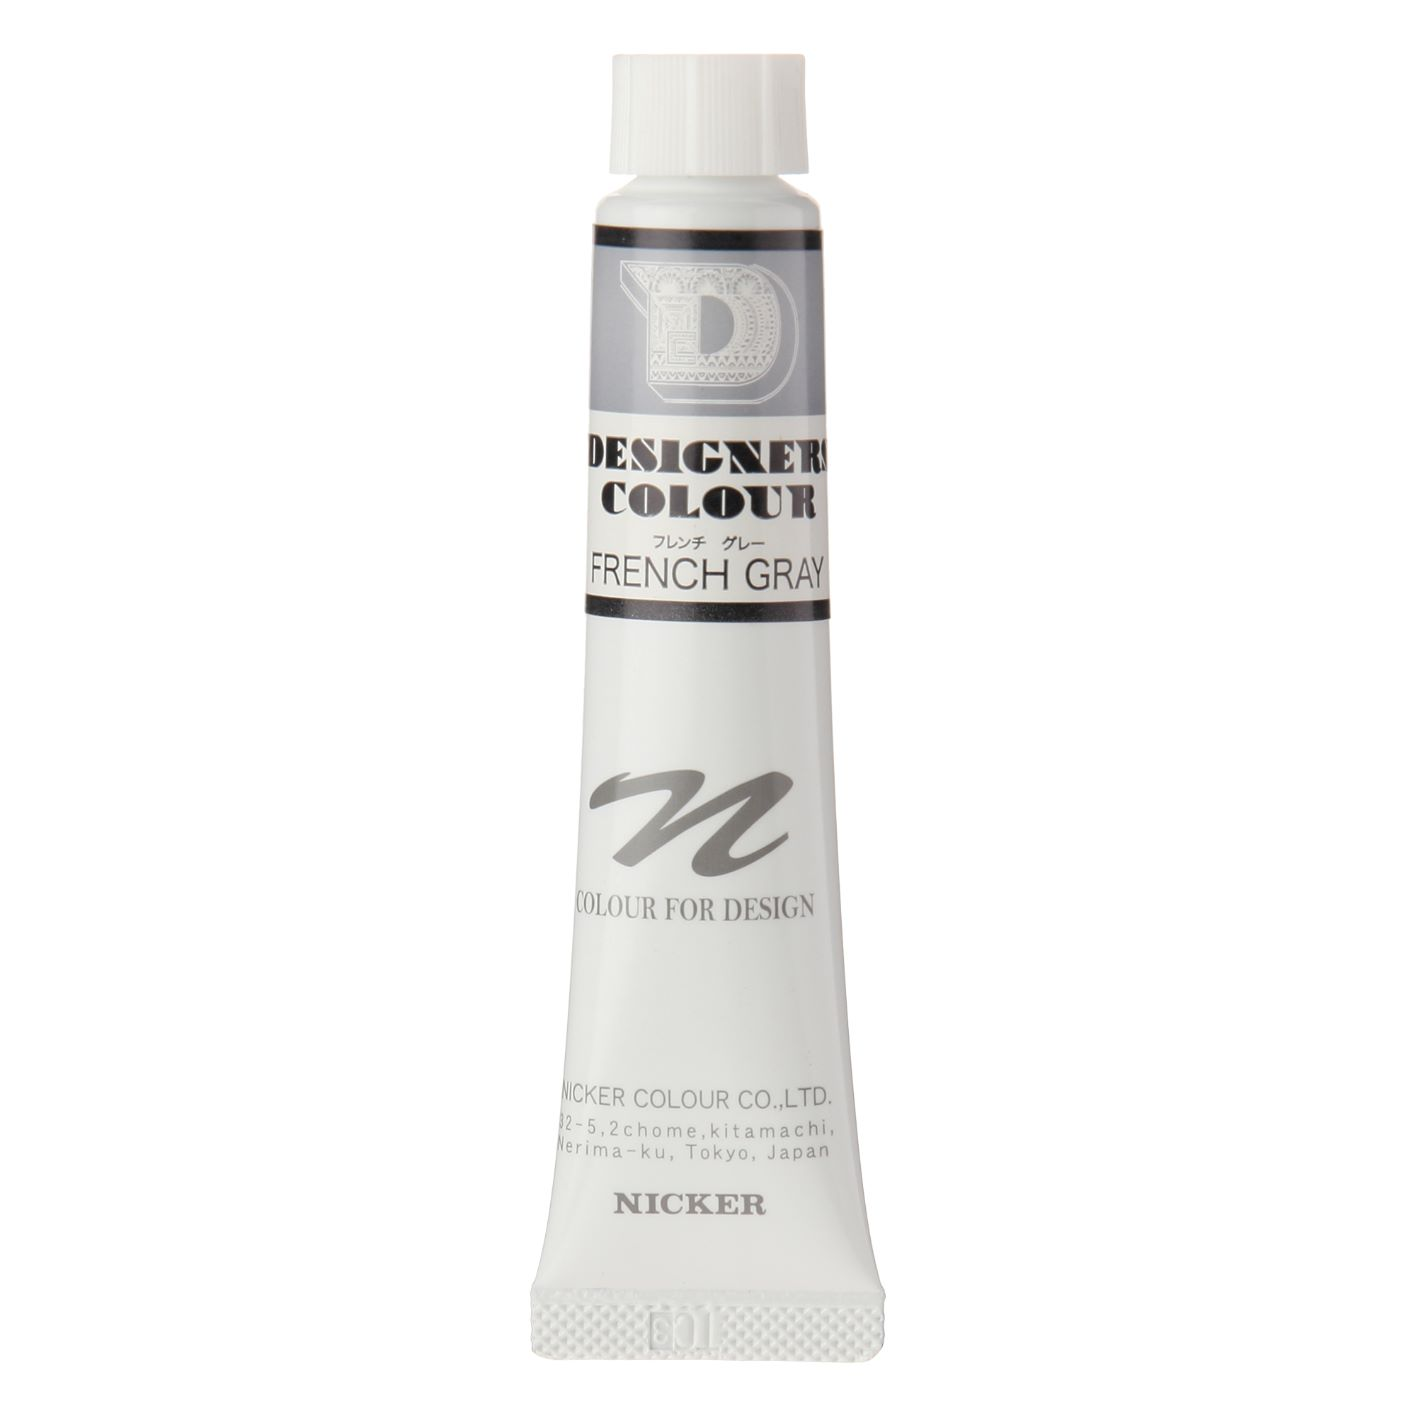 DESIGNERS COLOUR 20ml 558 FRENCH GRAY